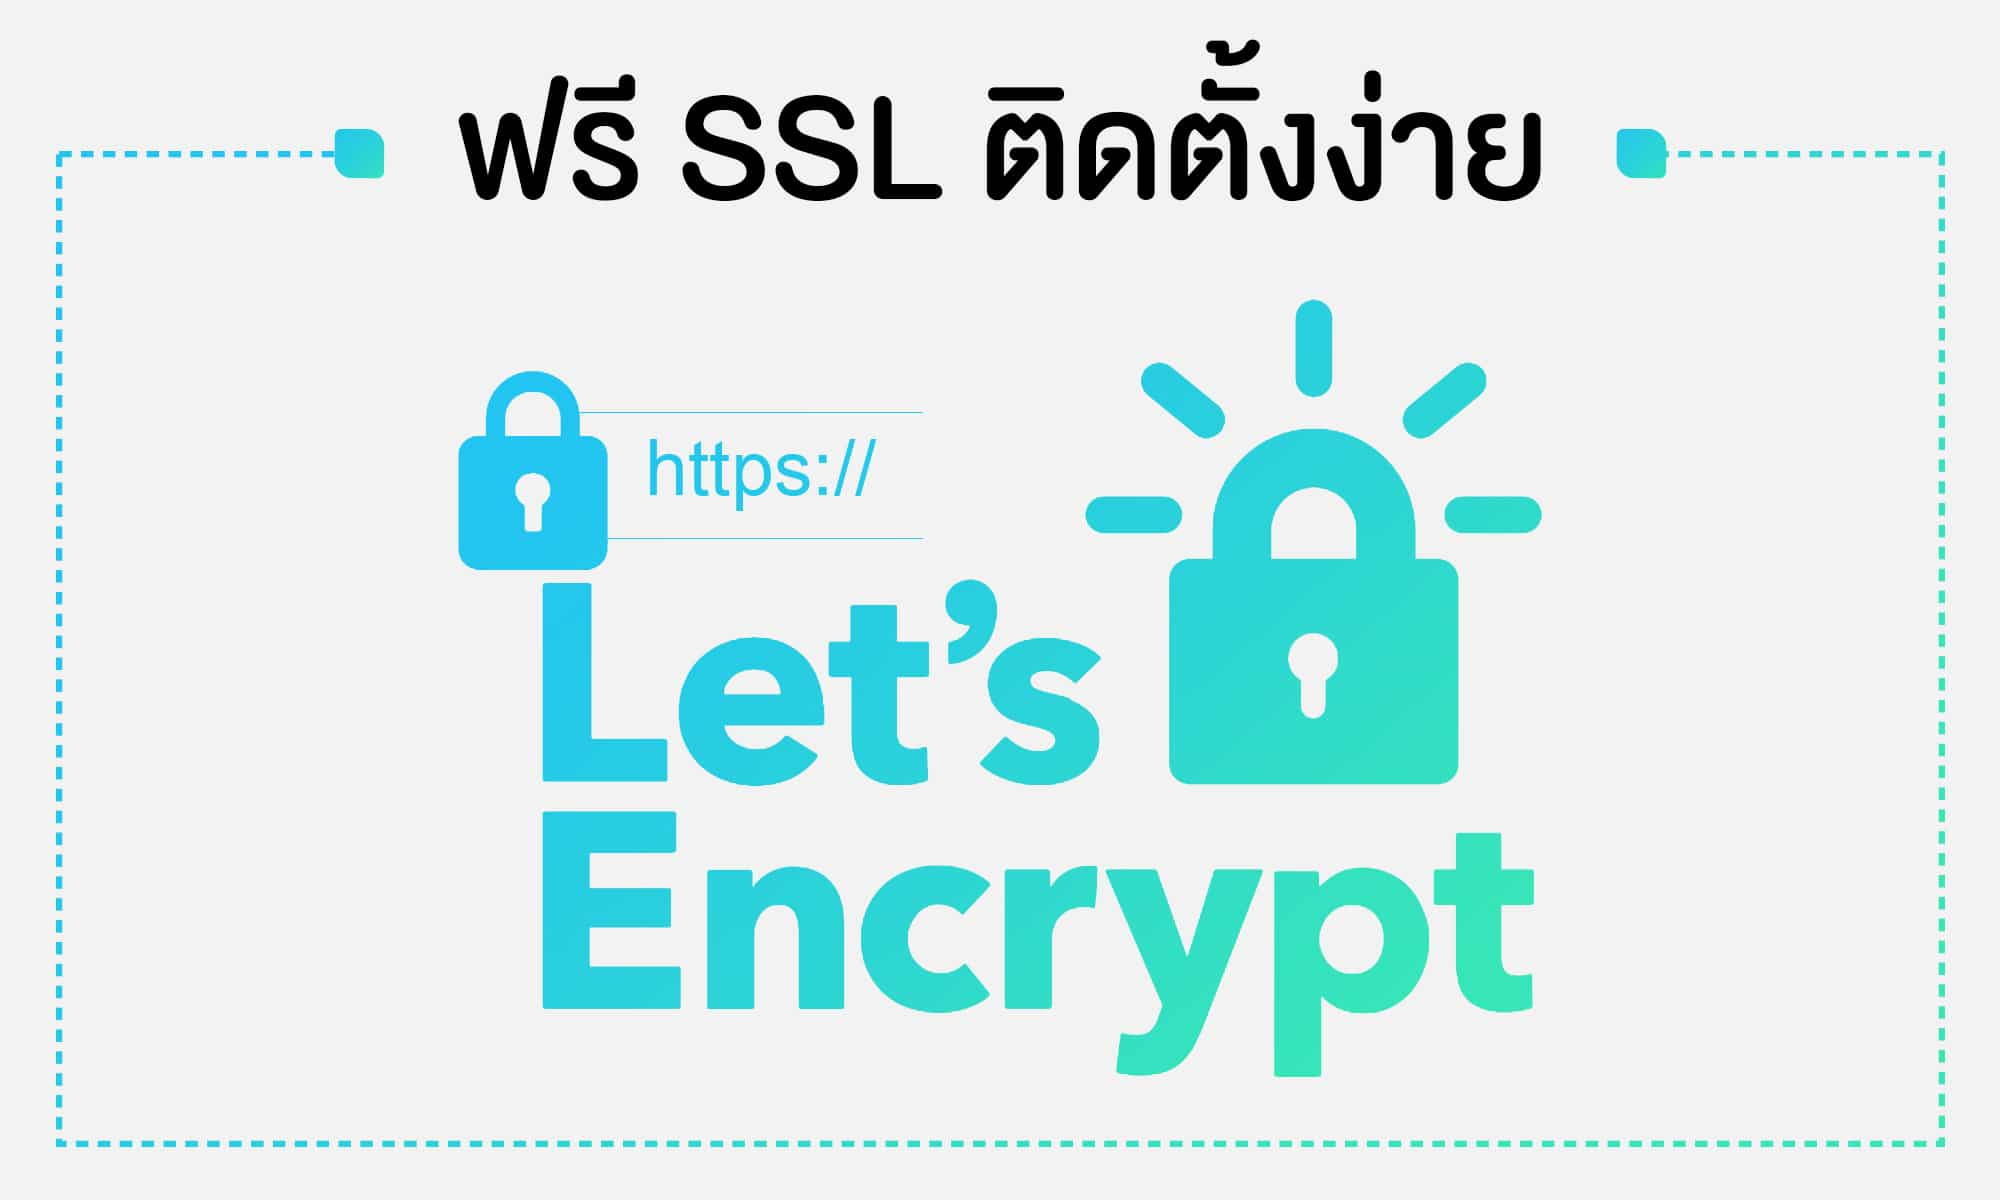 ฟรี SSL Thaidatahosting.com - ผู้ให้บริการ Cloud VPS / Cloud SSD Hosting / Cloud Server / Web Hosting / Email Hosting อันดับ 1 ของไทย